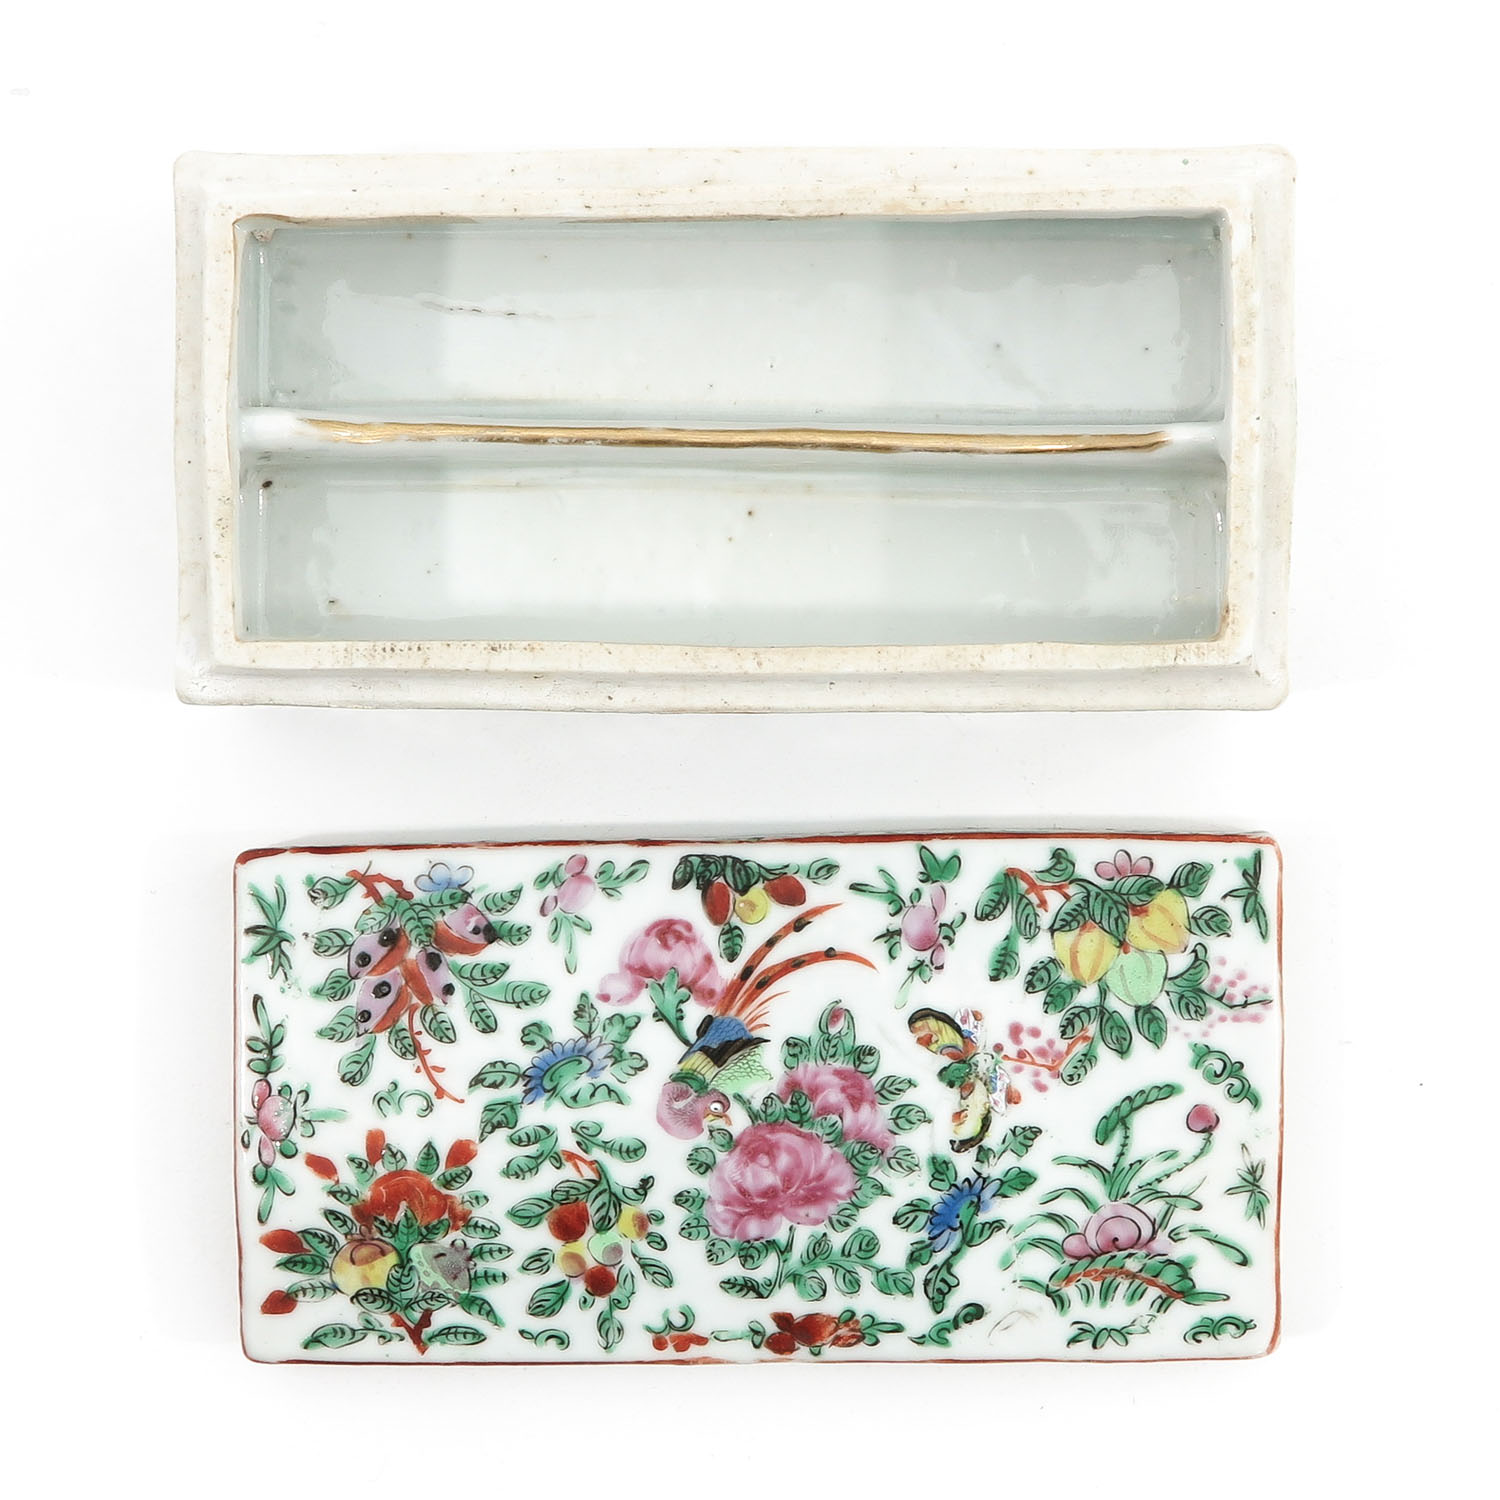 A Cantonese Box - Image 5 of 10